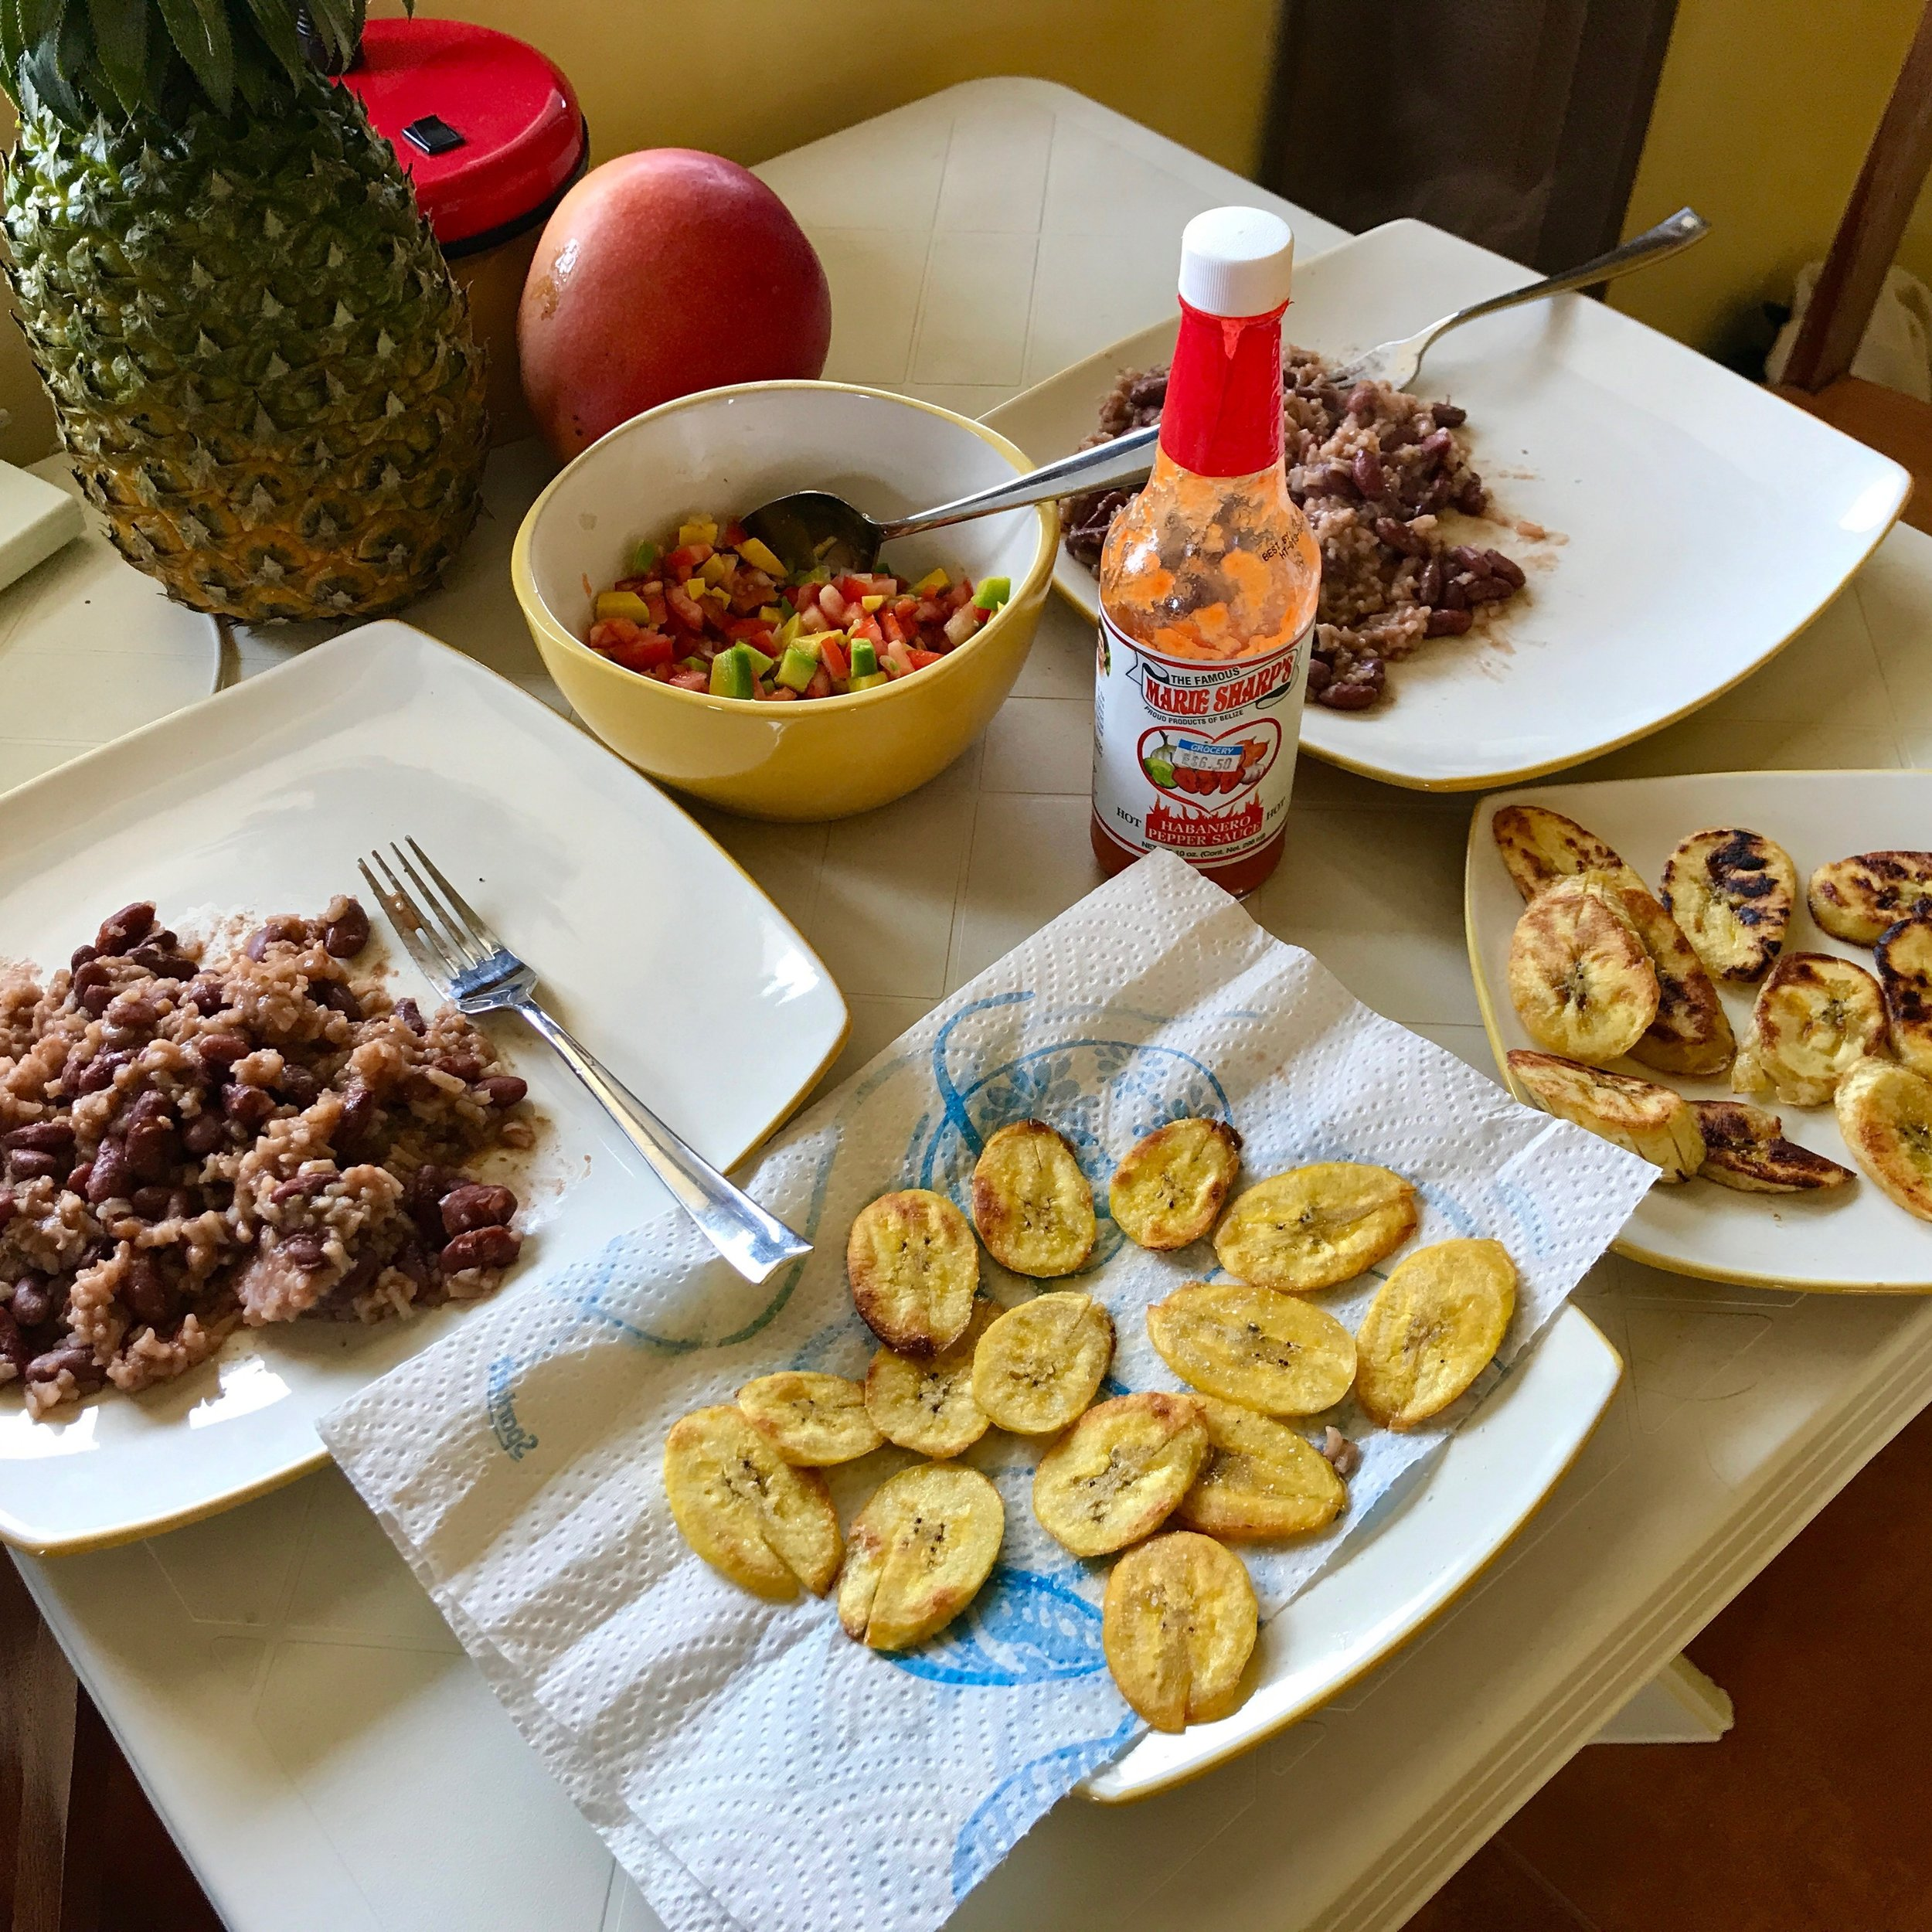 A typical meal we cooked in Placencia